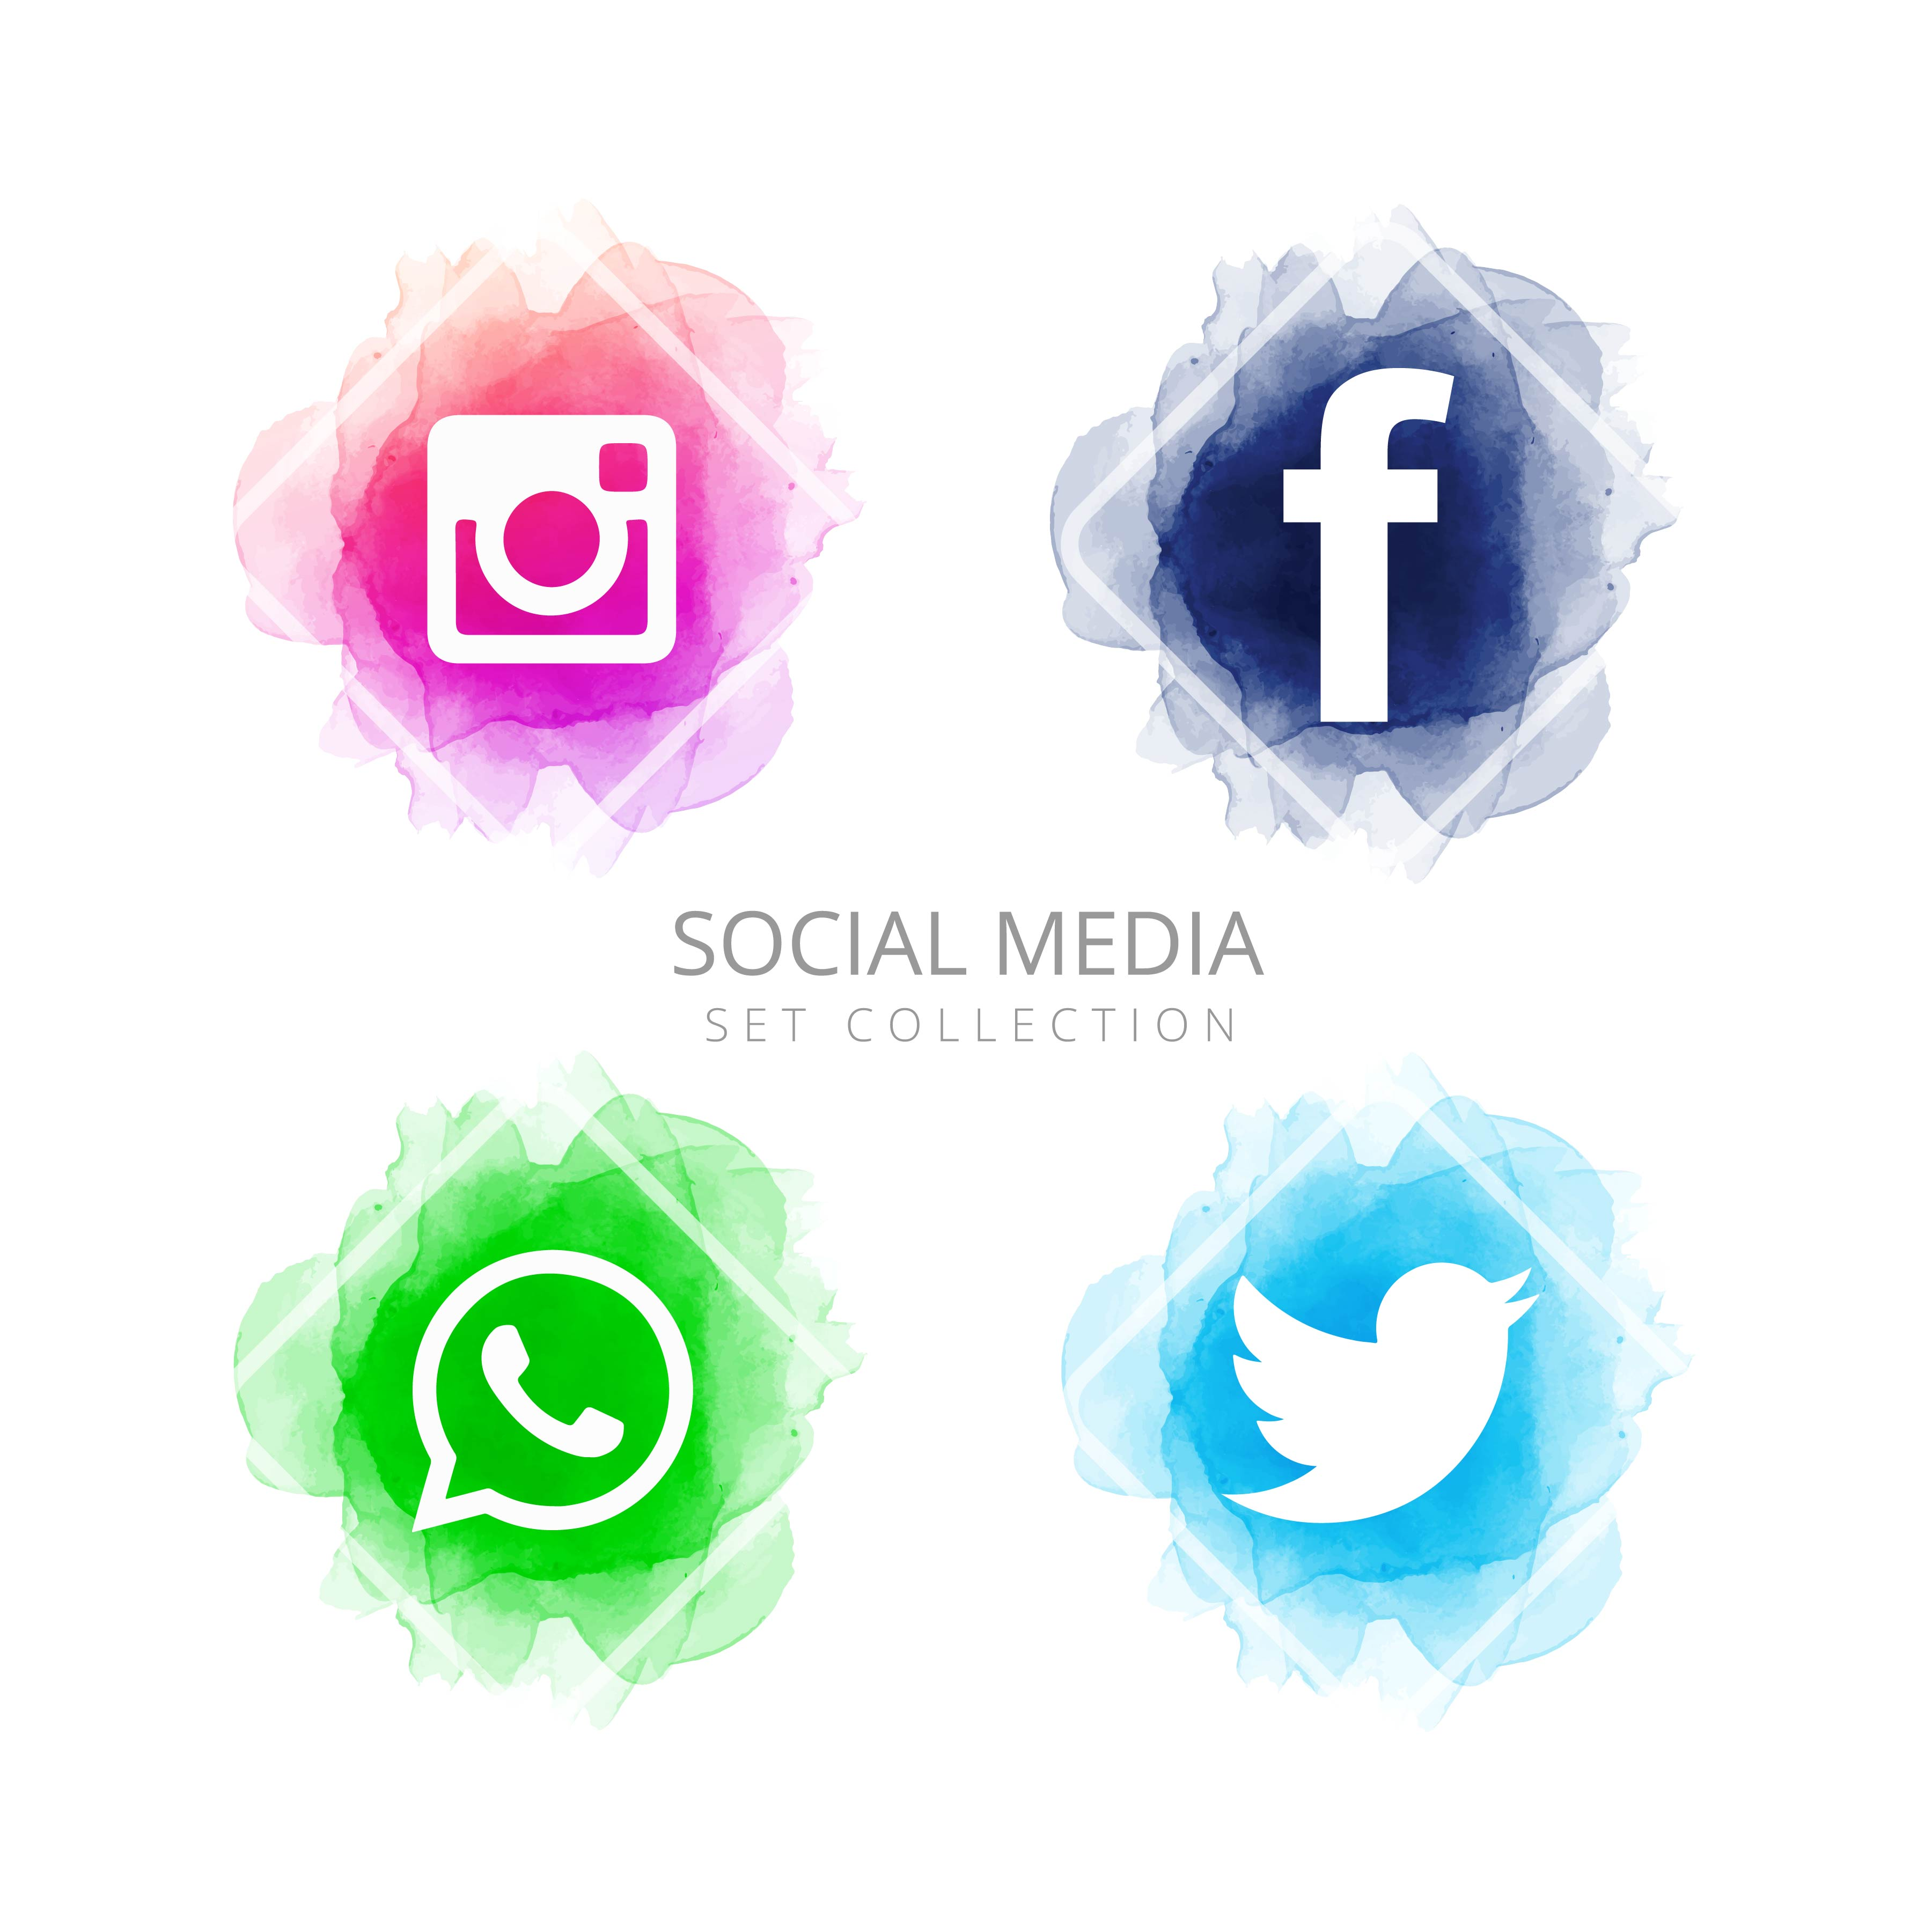 Abstract social media icons set vector - Download Free ...